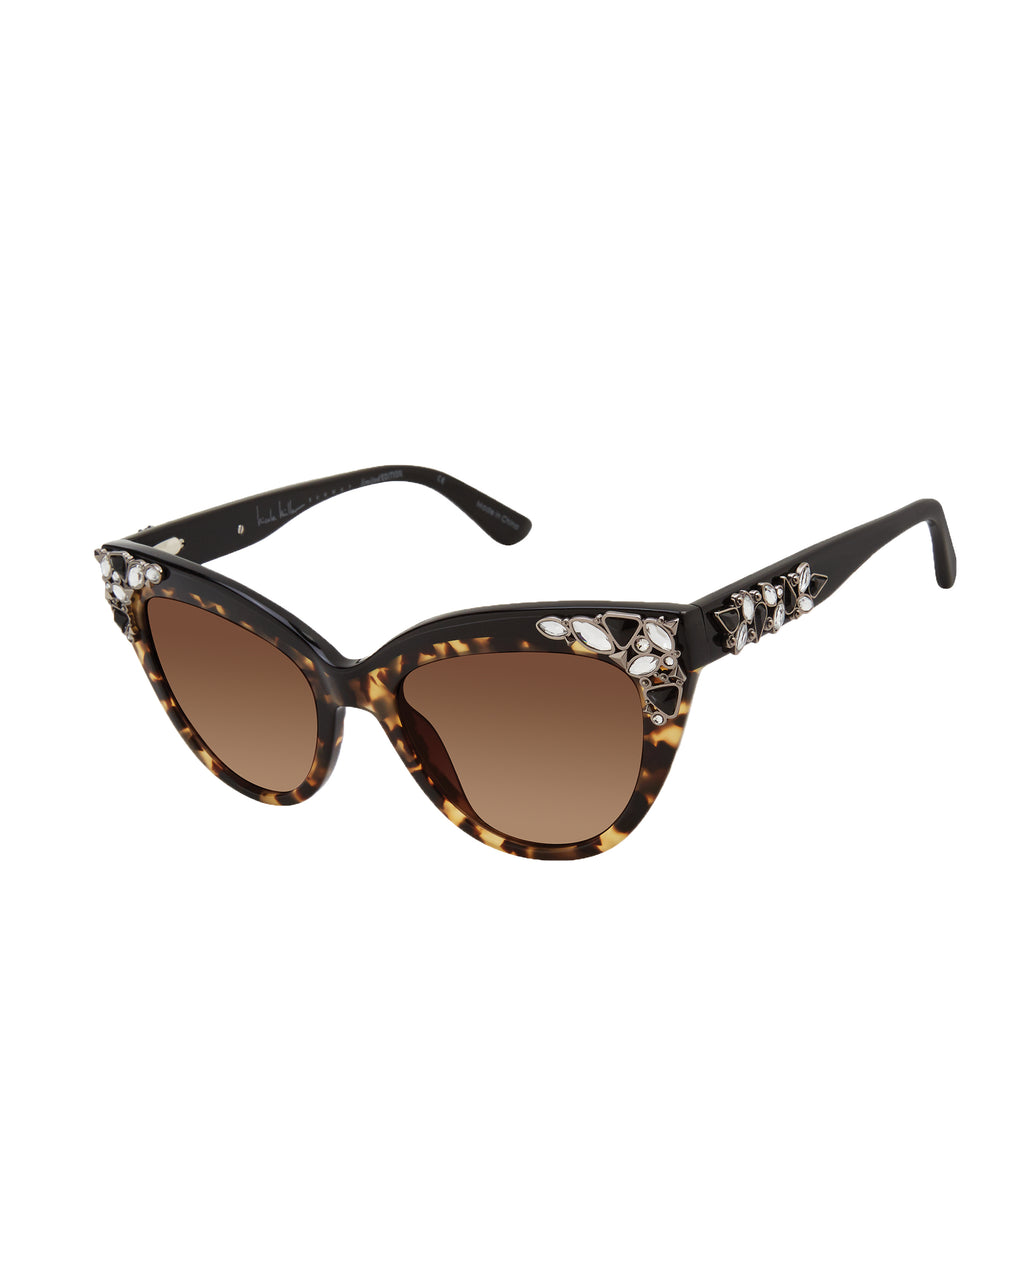 NMCORSI - CoRSICA RUNWAY SUNGLASSES - accessories - sunglasses - THESE CATEYE SUNGLASSES FEATURE CRYSTALS AND A SLEEK DESIGN. 100% UVA/UVB.